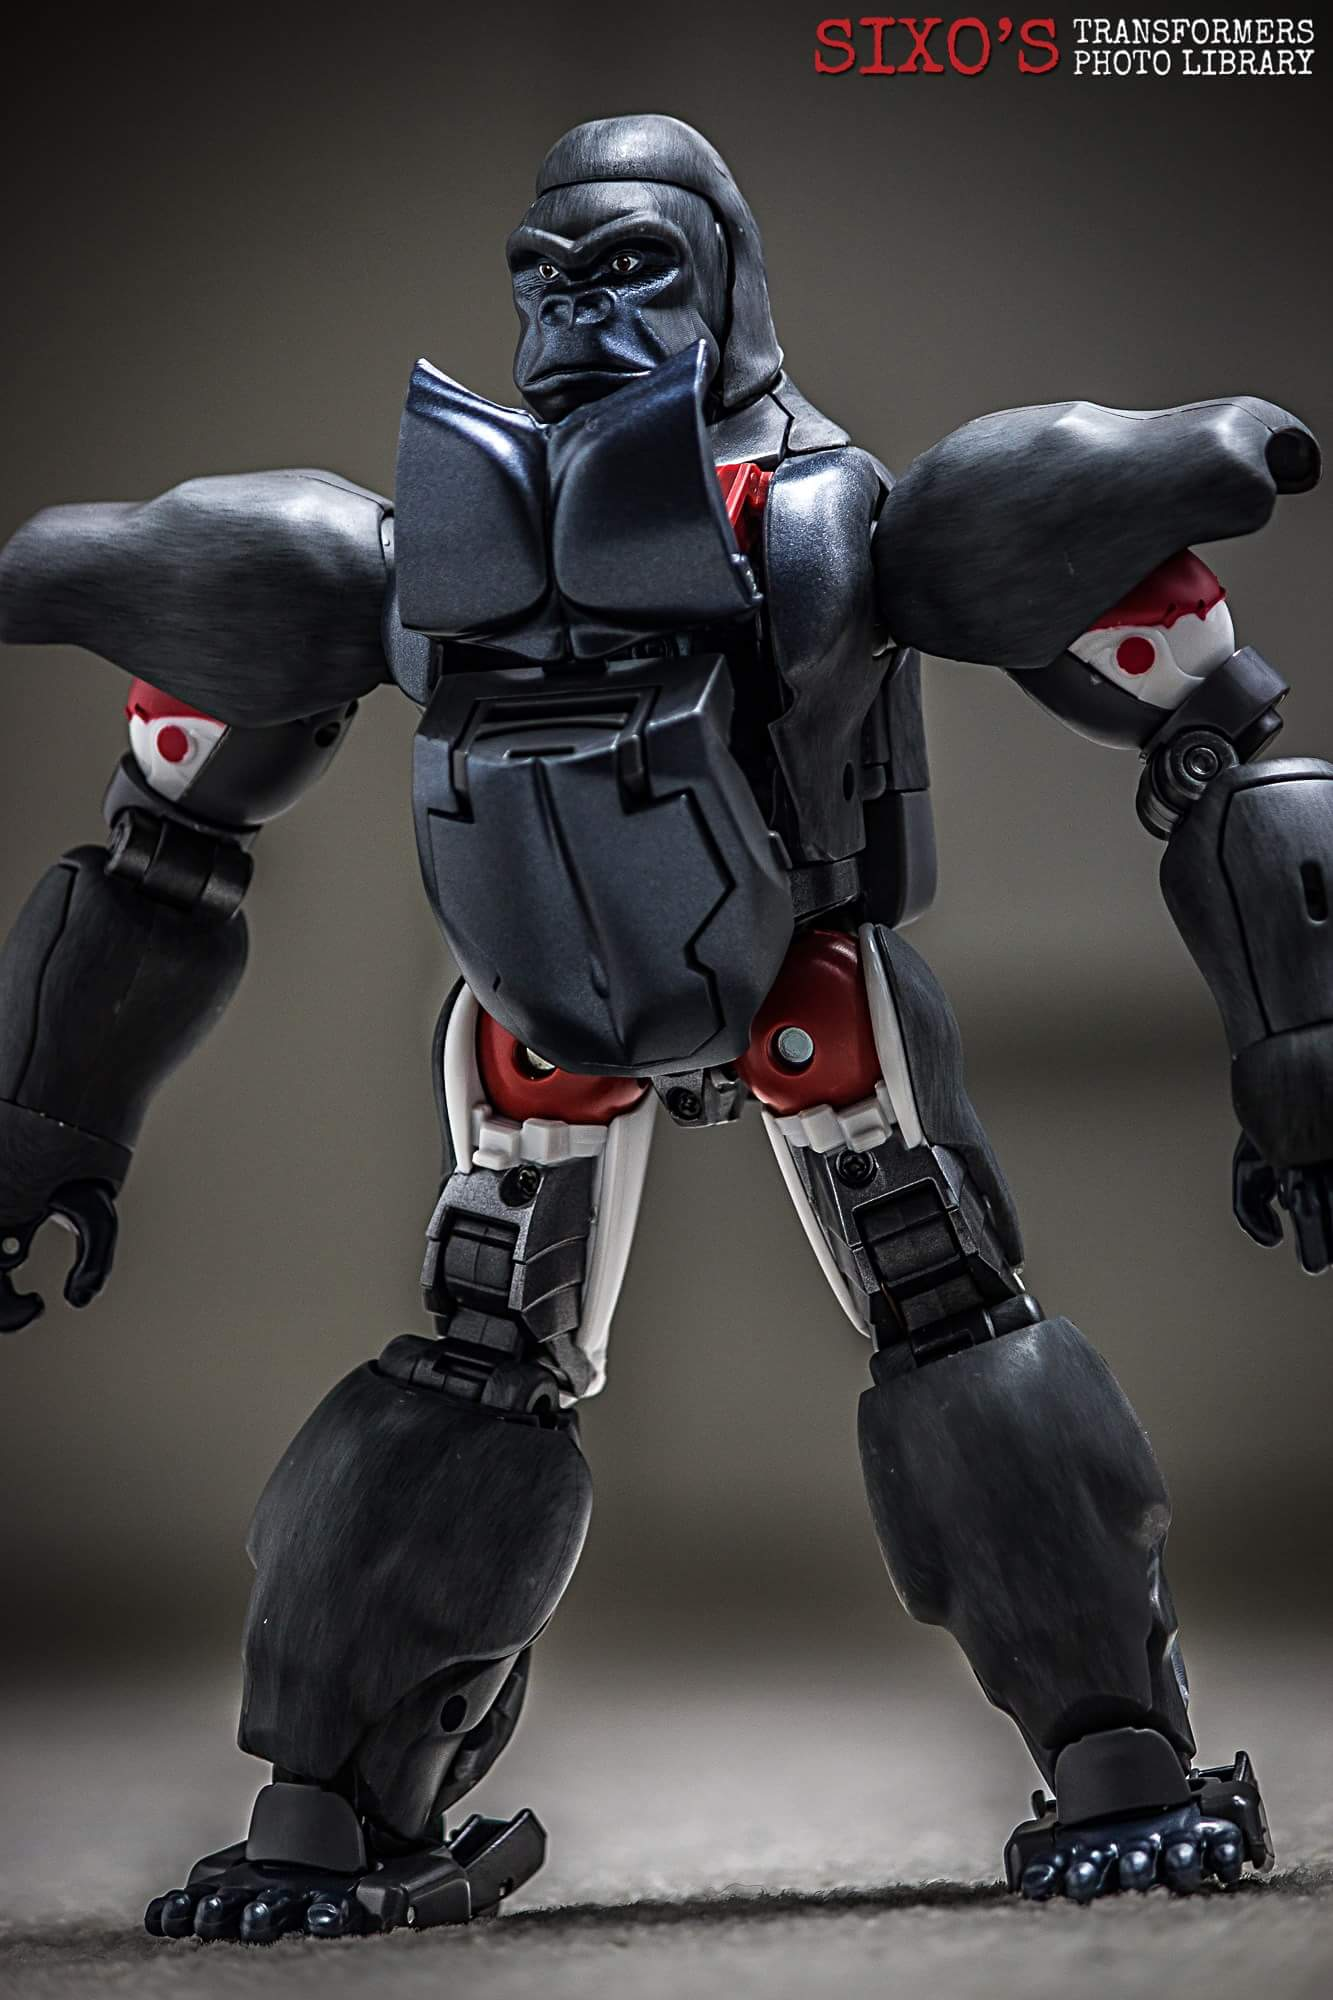 [Masterpiece] MP-32, MP-38 Optimus Primal et MP-38+ Burning Convoy (Beast Wars) - Page 3 147QgvDg